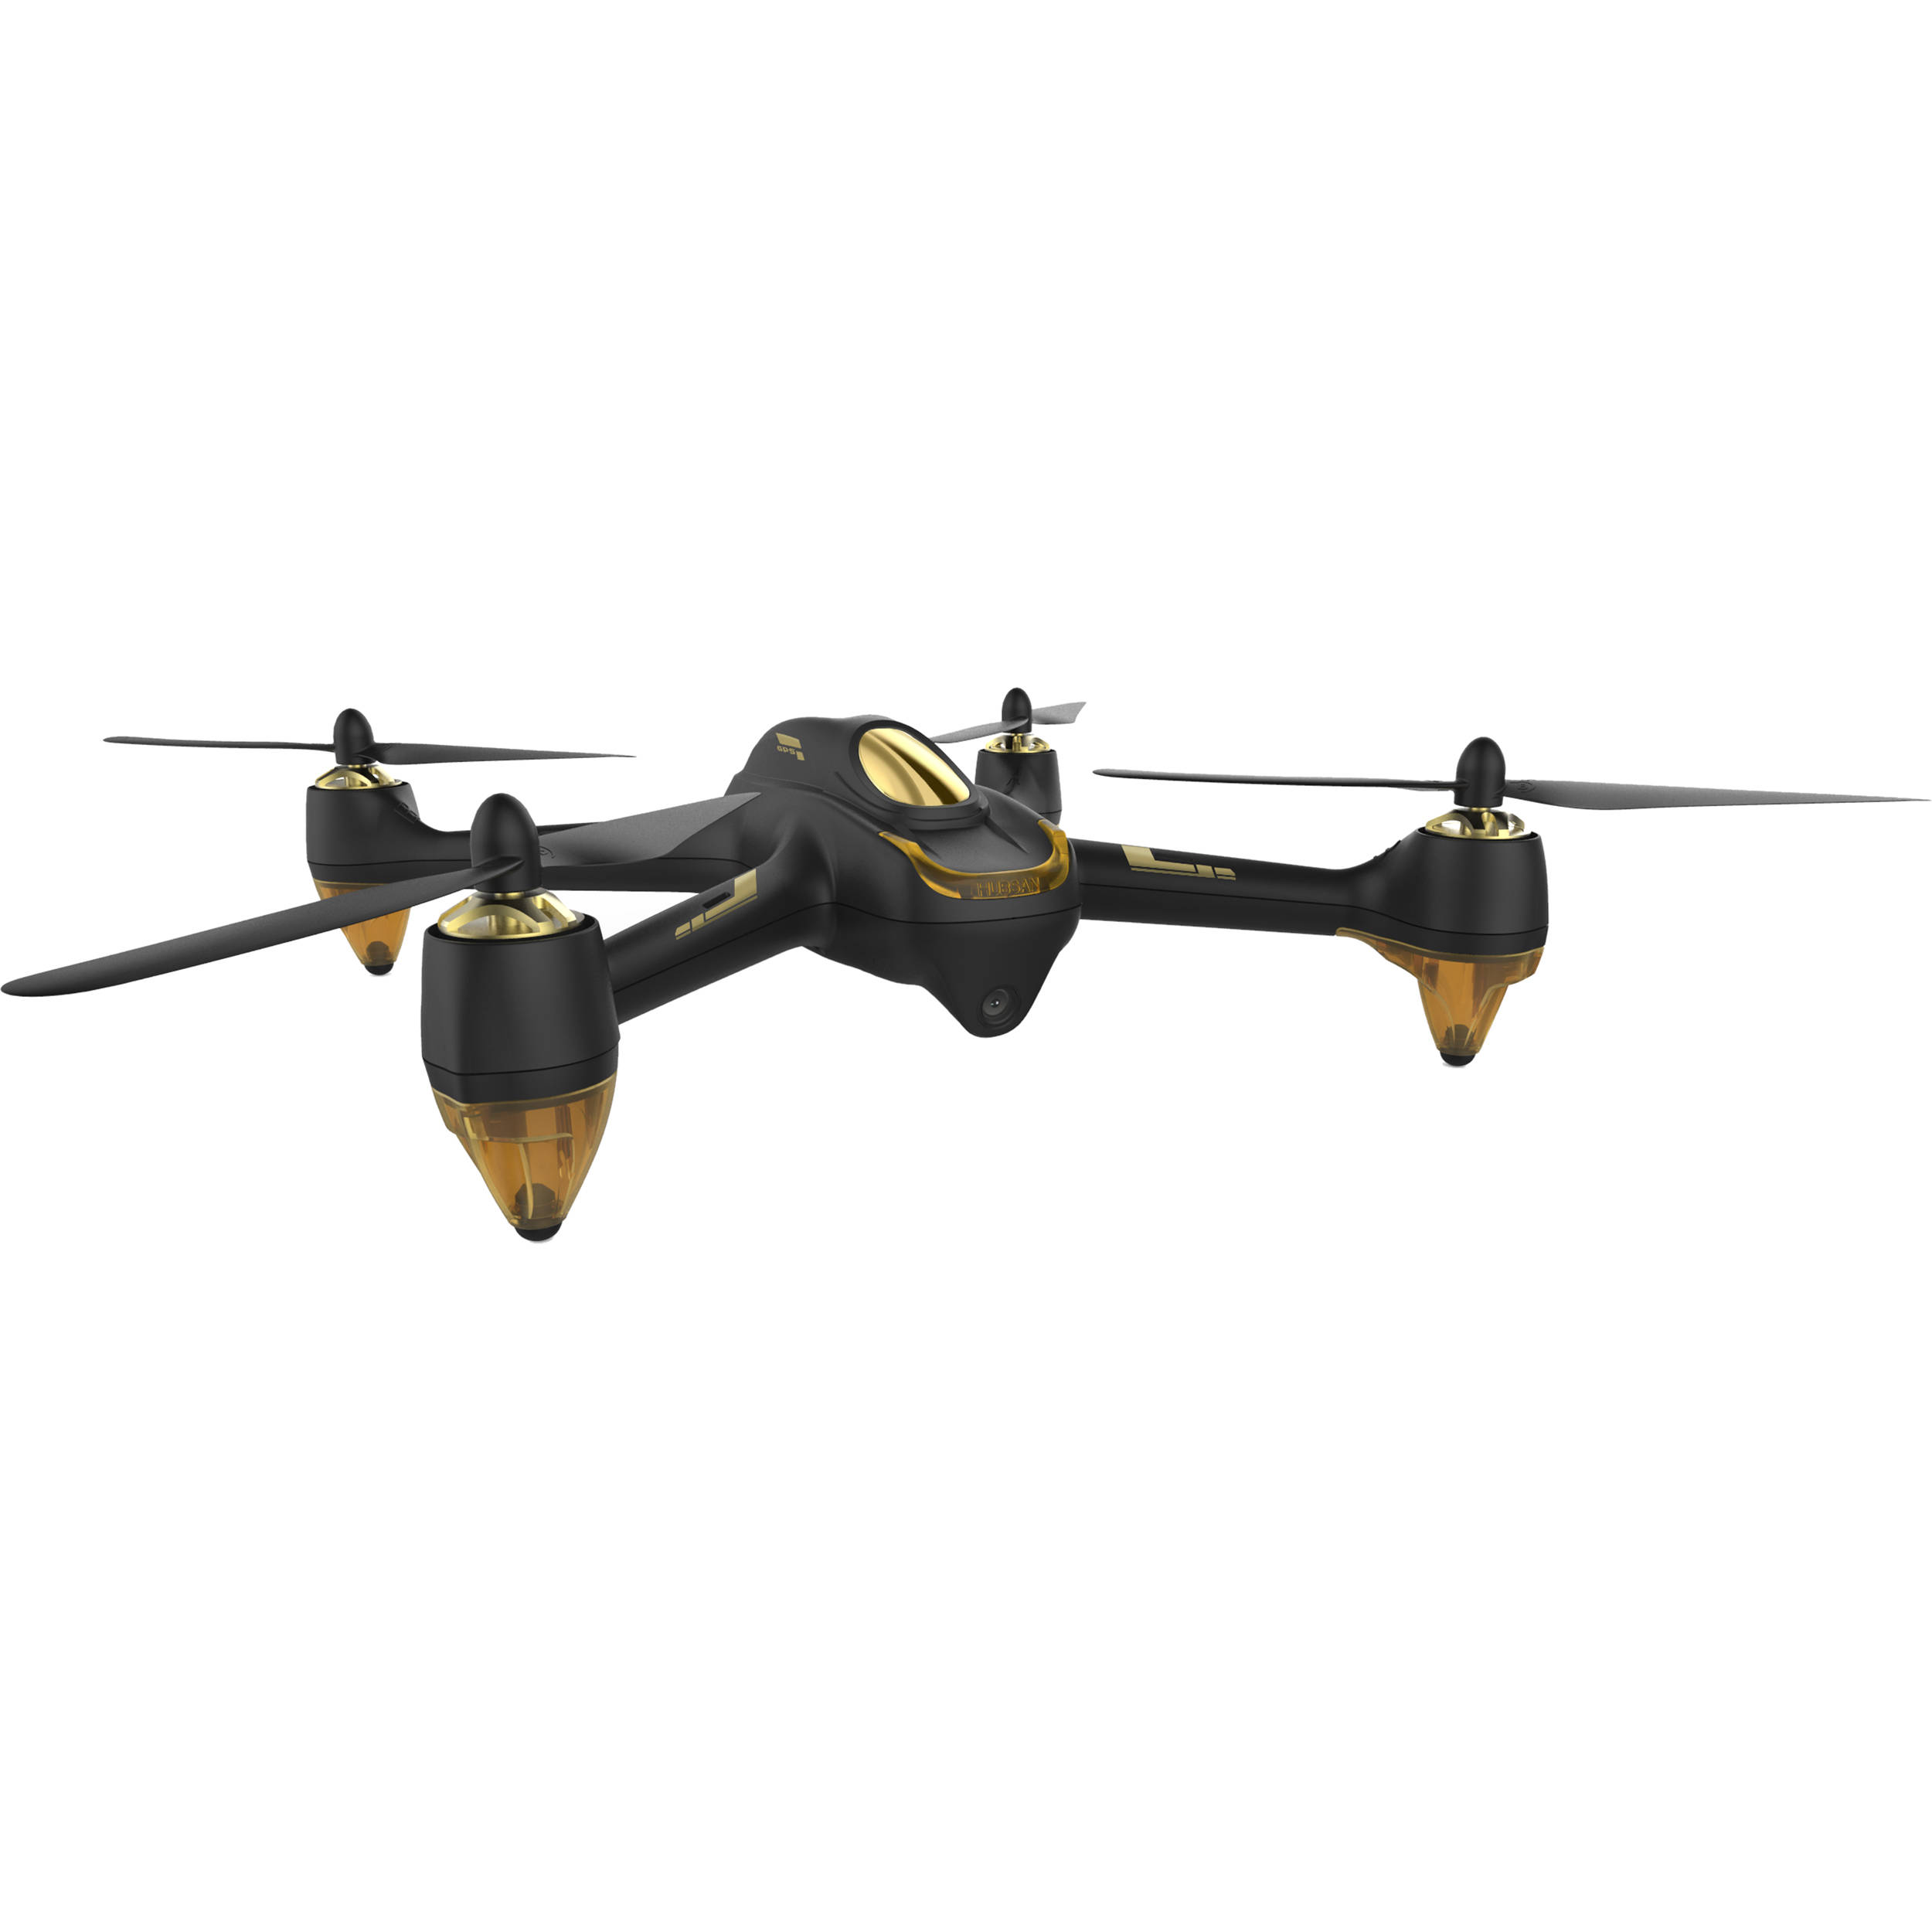 quadcopter with gps and camera with Hubsan Huh501sbk H501s X4 Fpv Quadcopter on 401125 furthermore 381g Folding Structure Drone With Camera 60003884620 as well 231863875467 additionally 394369 furthermore The Evolution Of Photography.